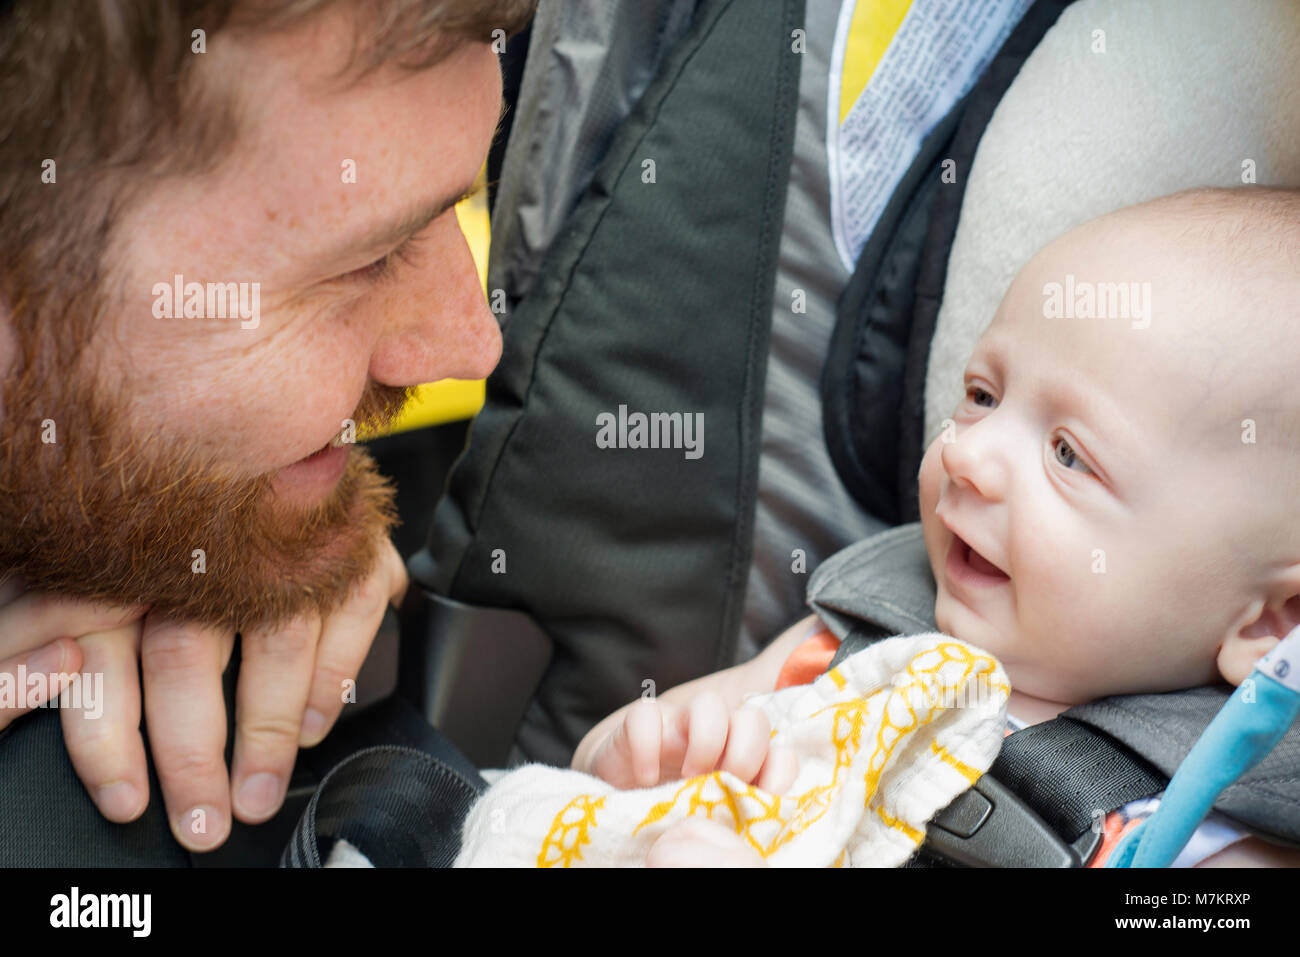 A man smiling at this infant son. 3 months old. - Stock Image